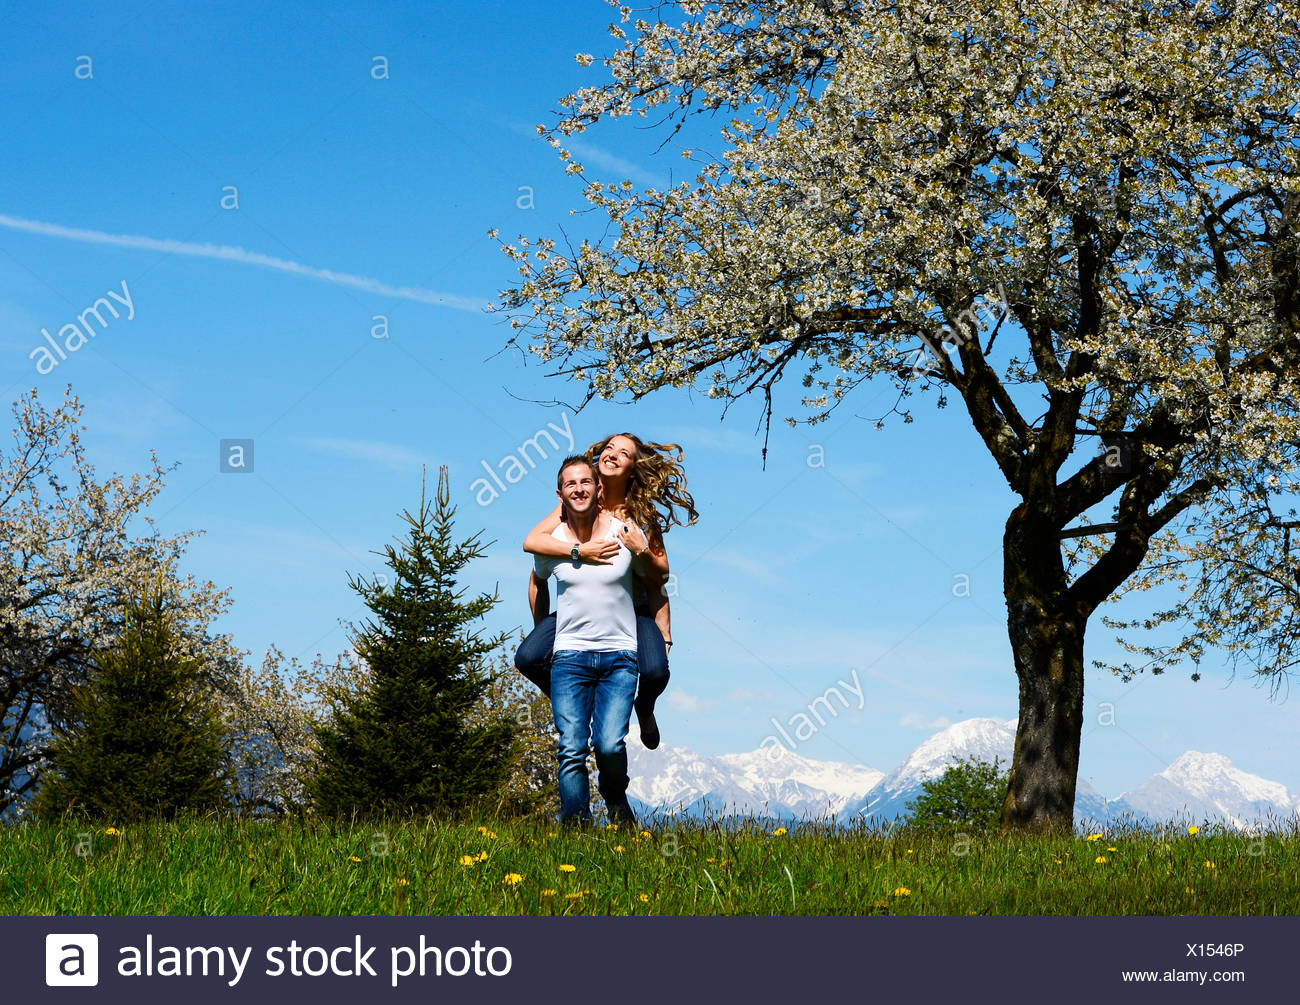 Man carrying a woman, smiling, in front of a flowering tree in the spring, Tyrol, Austria - Stock Image